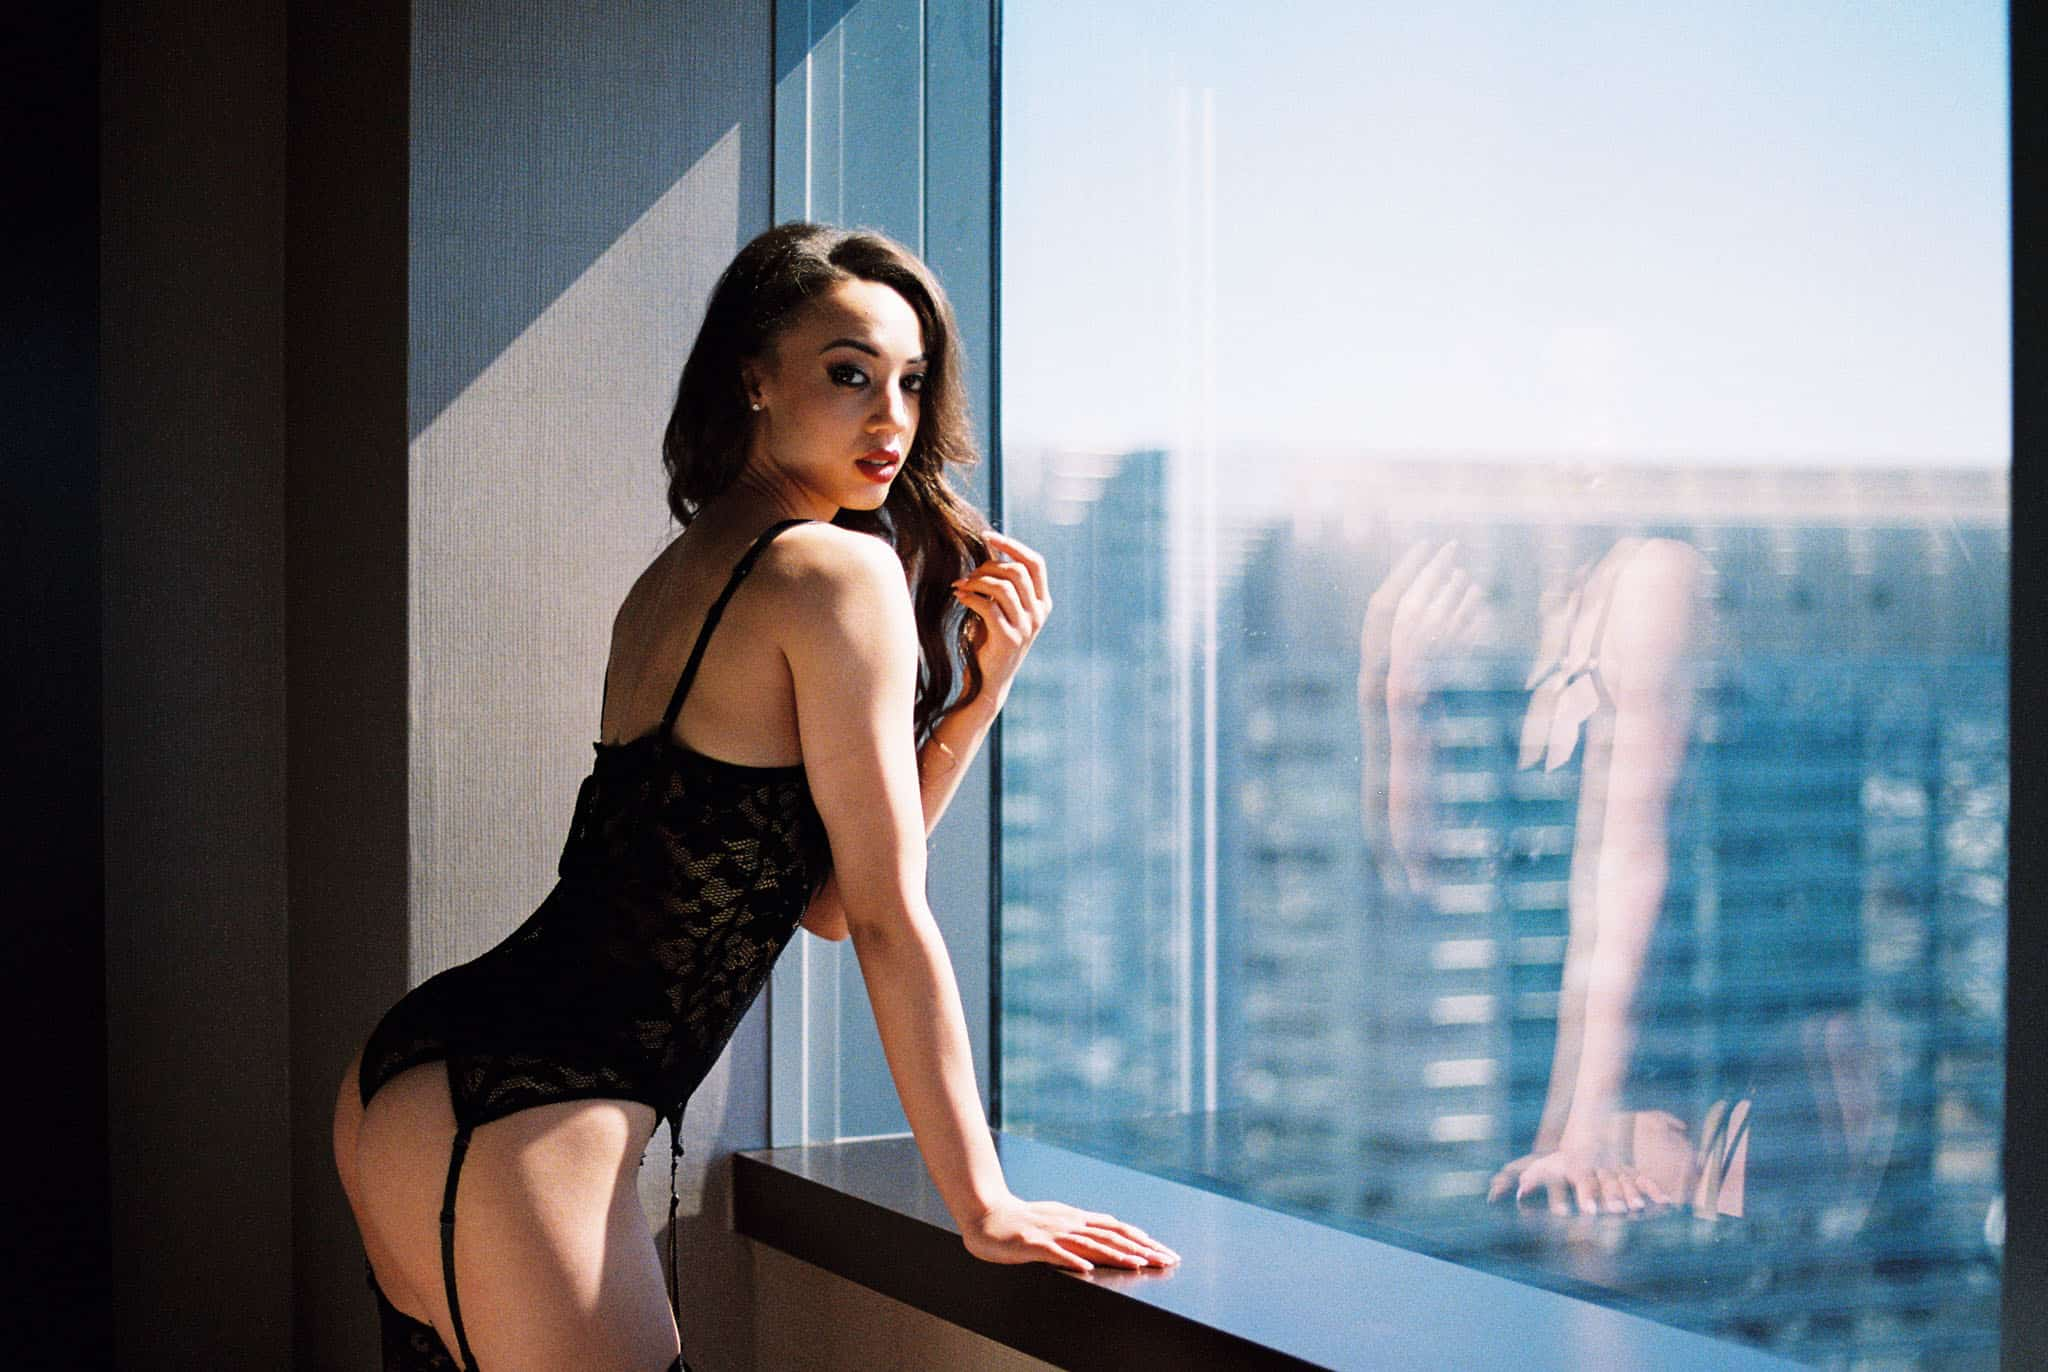 boudoir session shot on film at the Vdara resort in las vegas by jennifer james of supernova boudoir